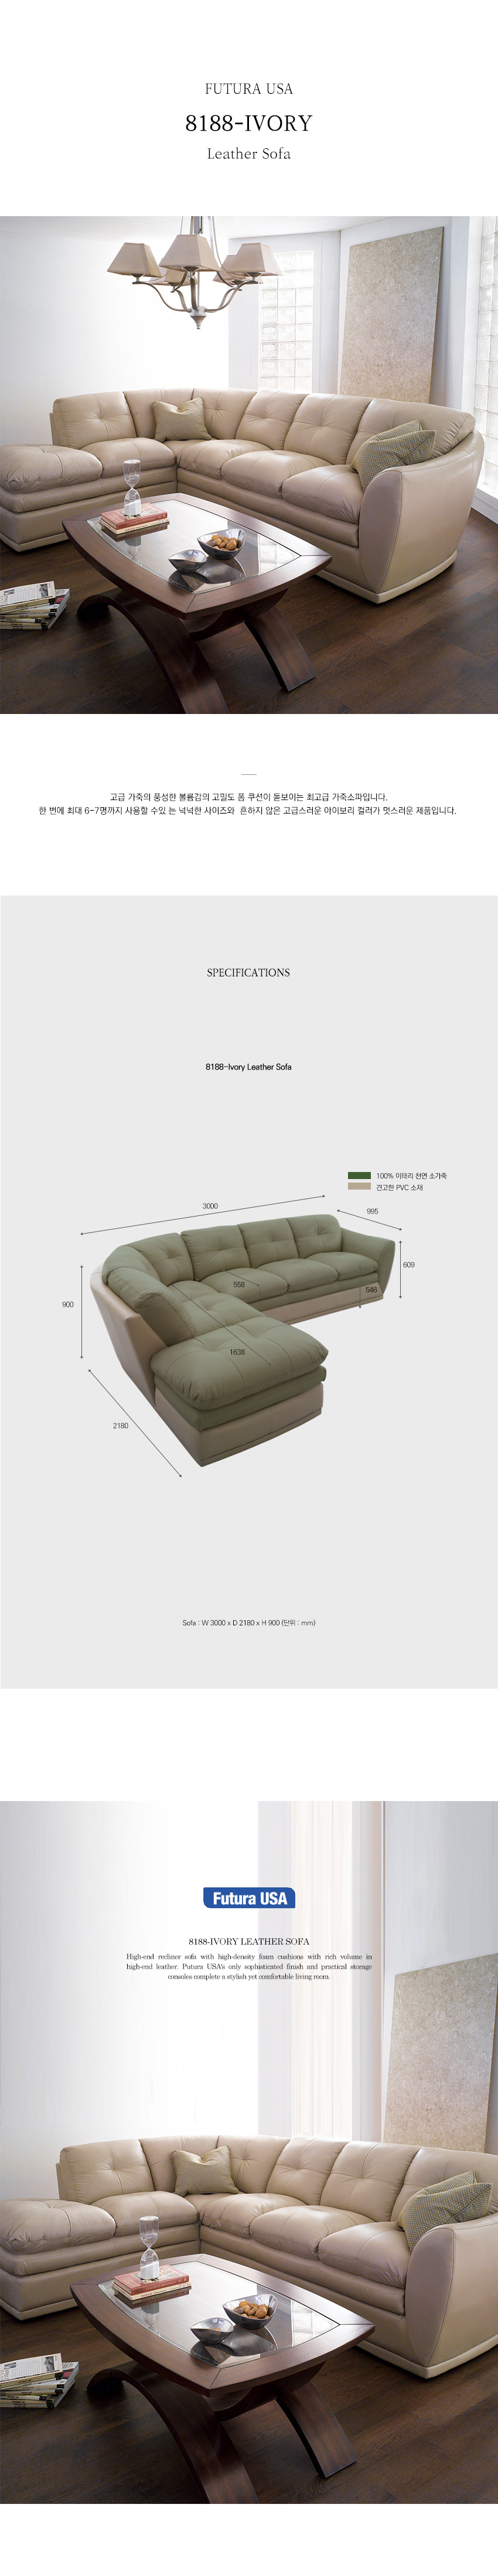 8188-Ivory-Leather-Sofa_add-1.jpg